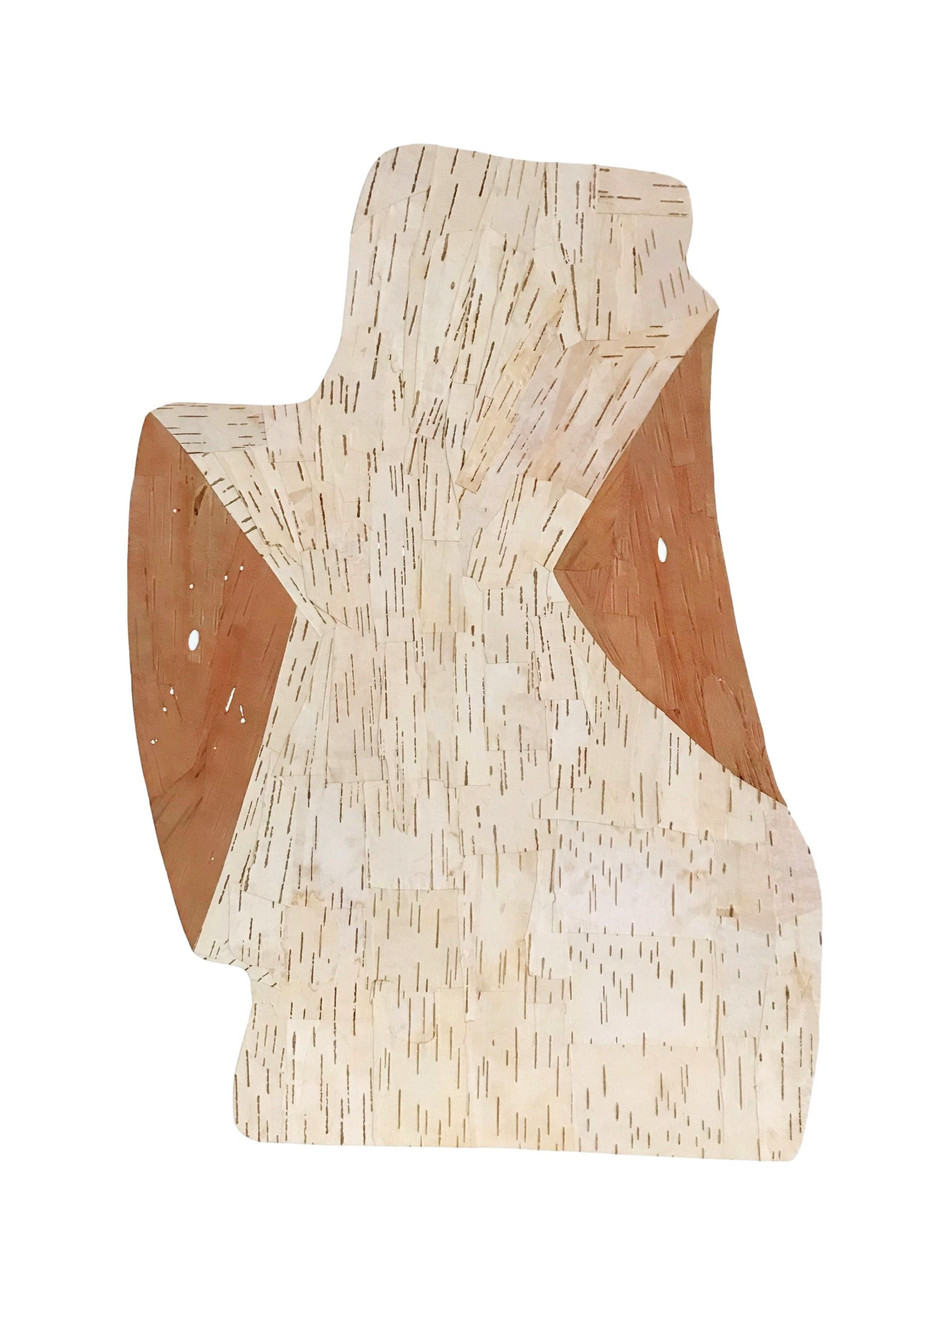 Bust, birch bark on paper, 2020 (77 x 59 cm)